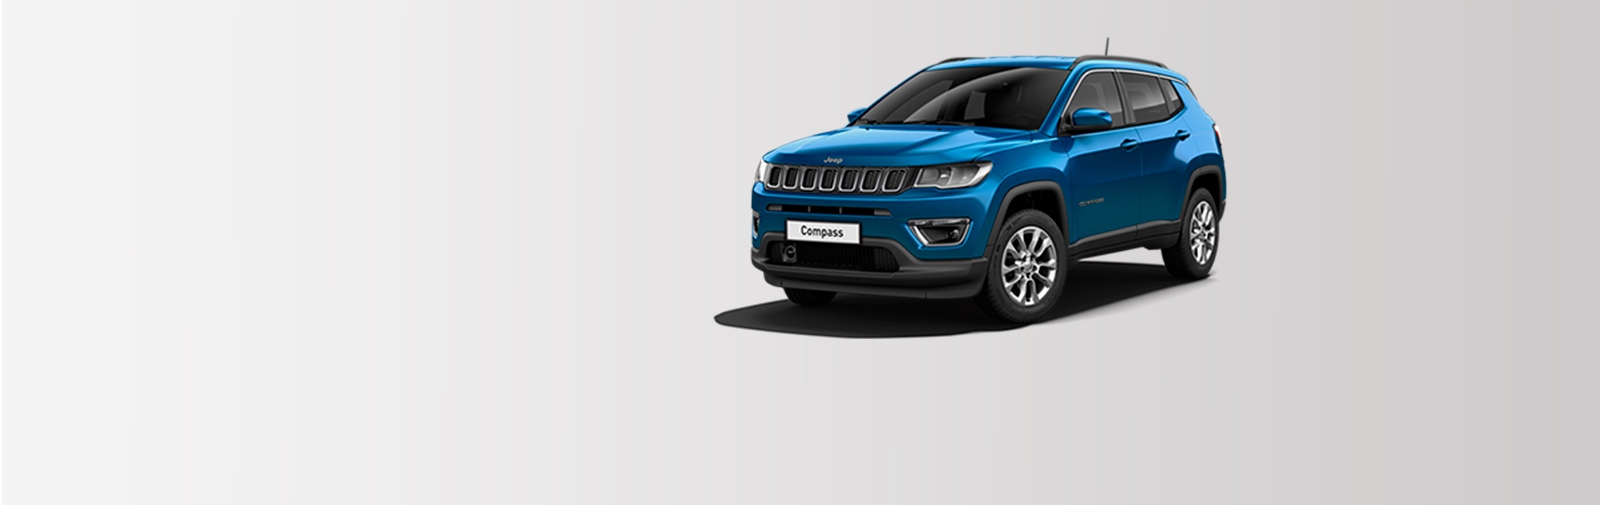 JEEP COMPASS BONUS SUPER AMMORTAMENTO